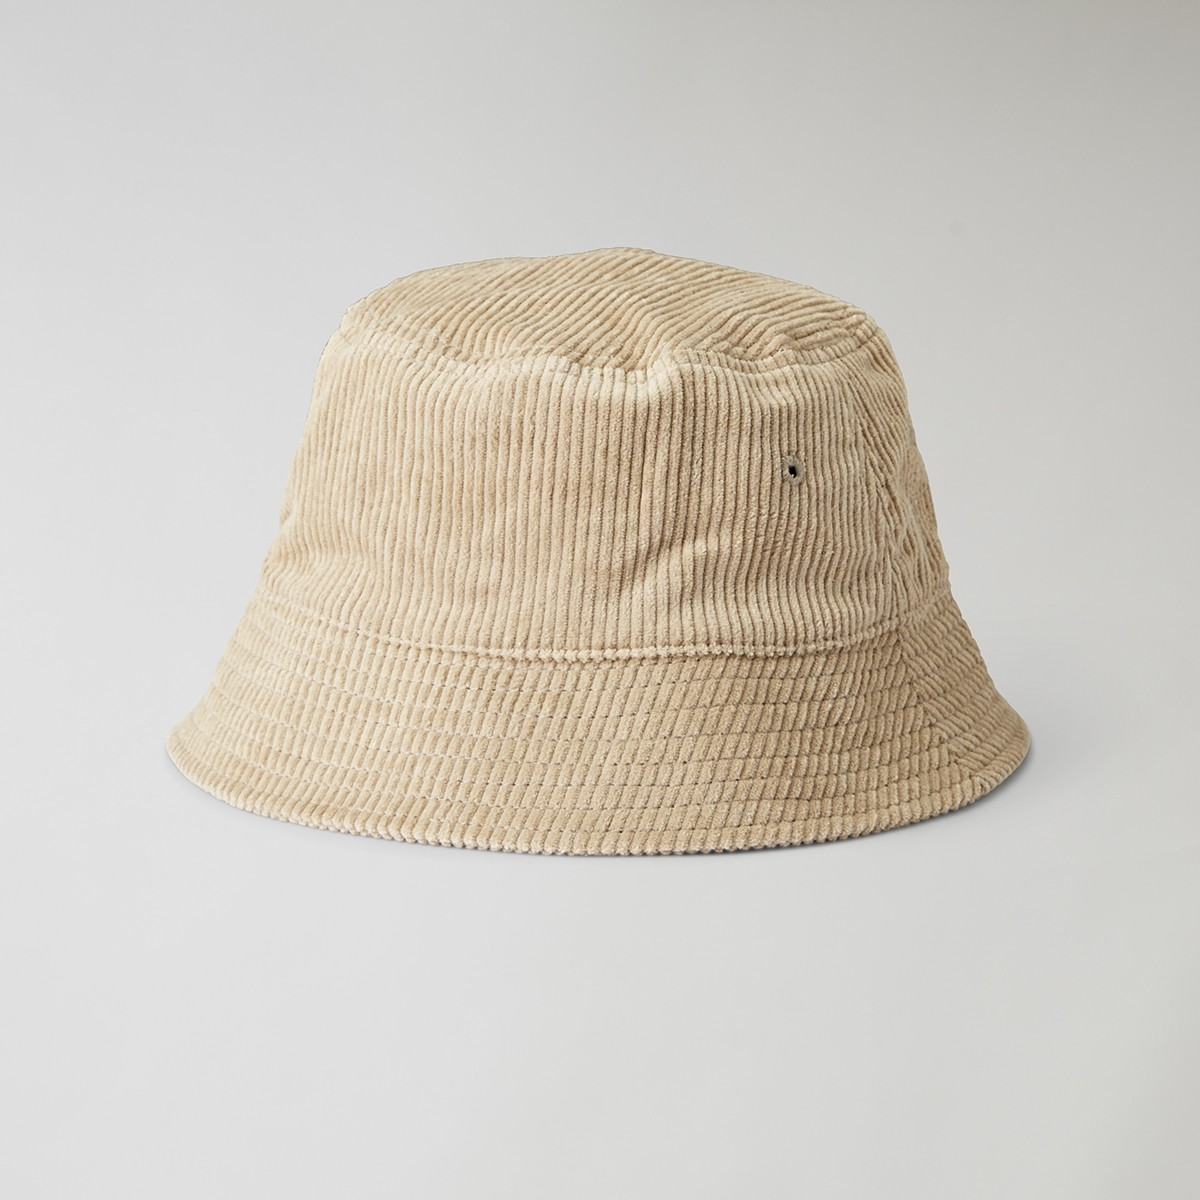 Noel Manchester Buckethat Beige | East West | Brothers.se